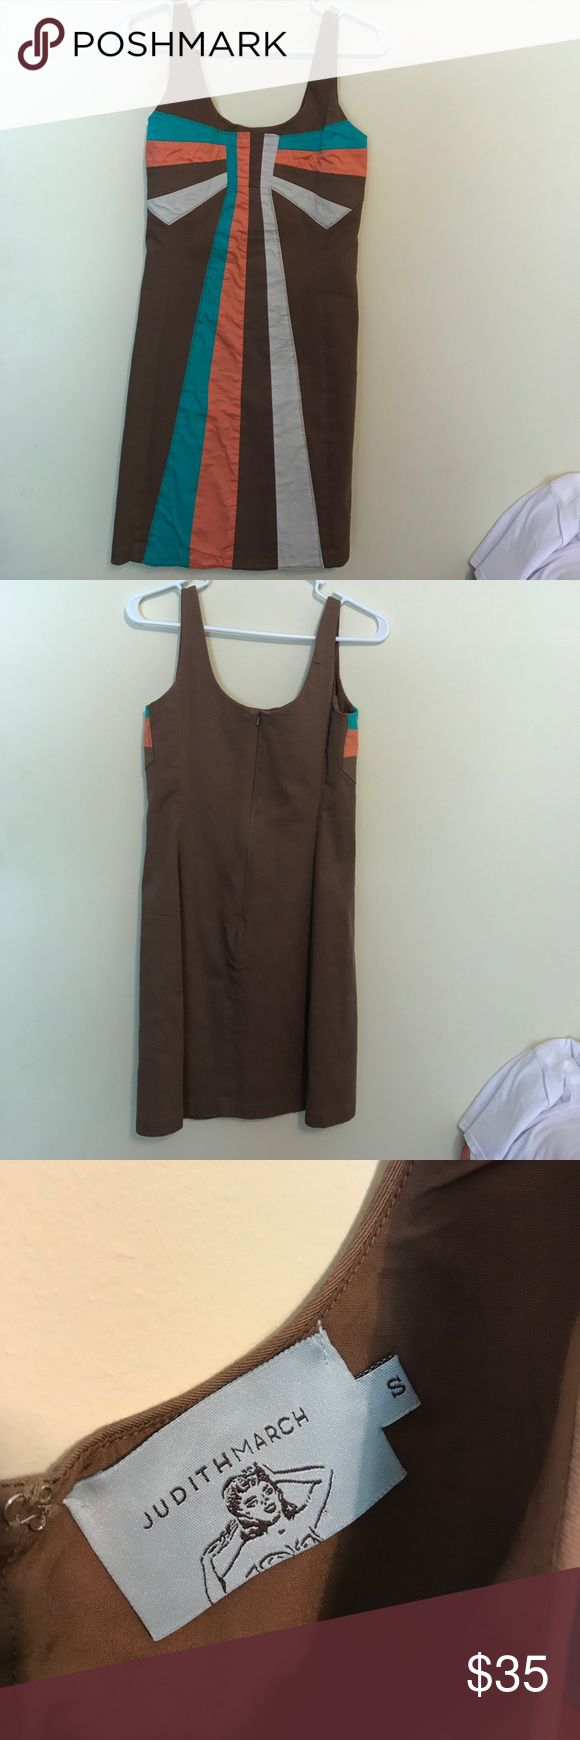 Judith March sleeveless dress never worn Judith march dress Judith March Dresses Mini